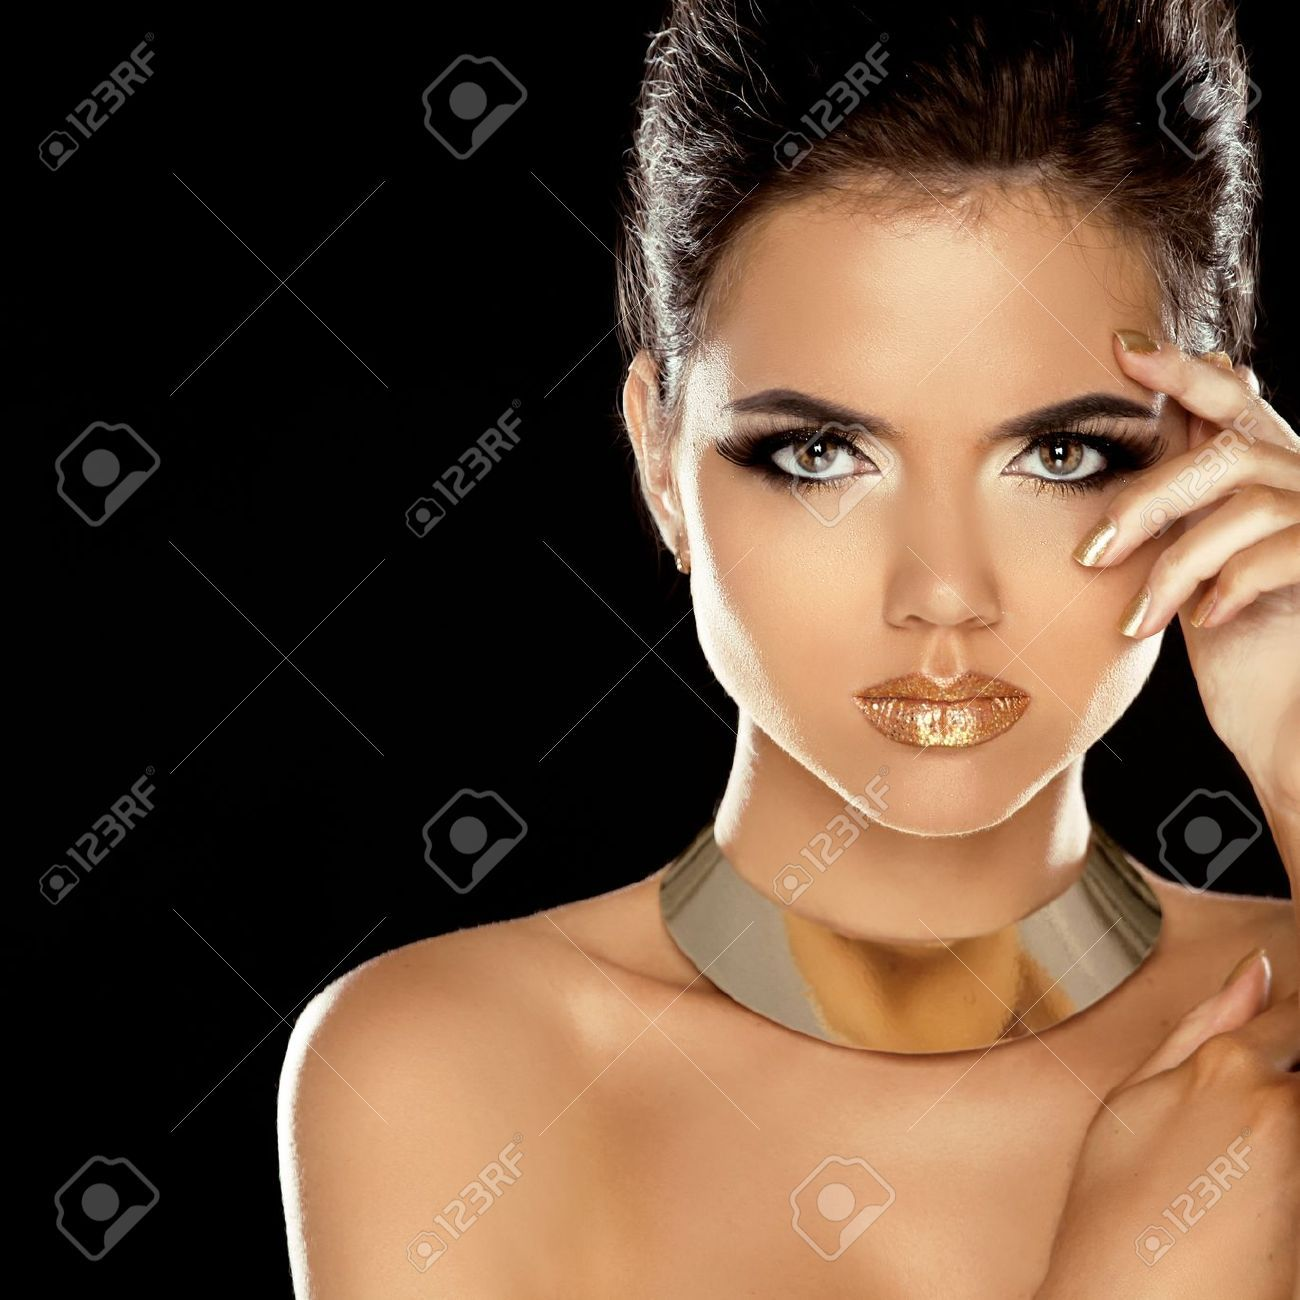 Jewelry Stock Photos Images, Royalty Free Jewelry Images